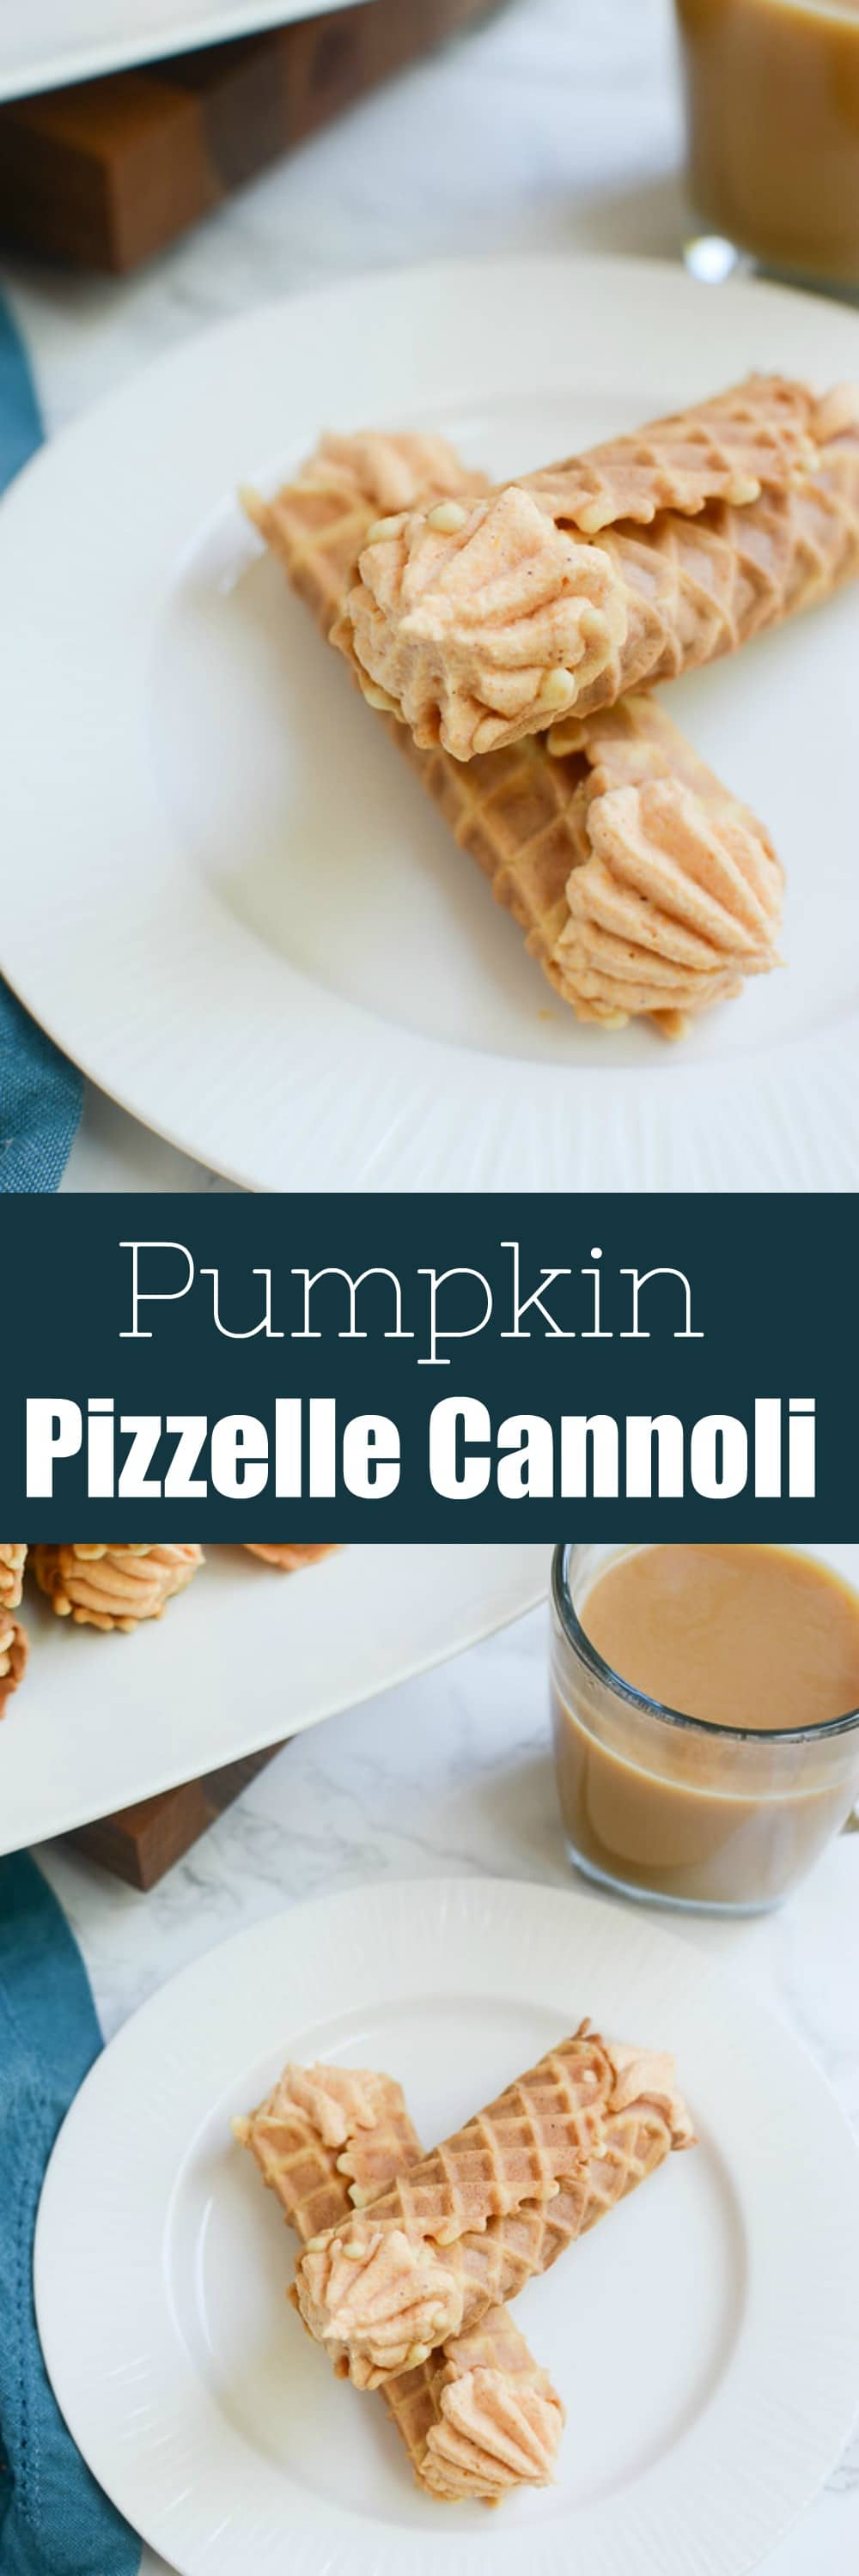 Pumpkin Pizzelle Cannoli - a twist on the classic cannoli! Pizzelle cookies with a sweetened pumpkin ricotta filling!